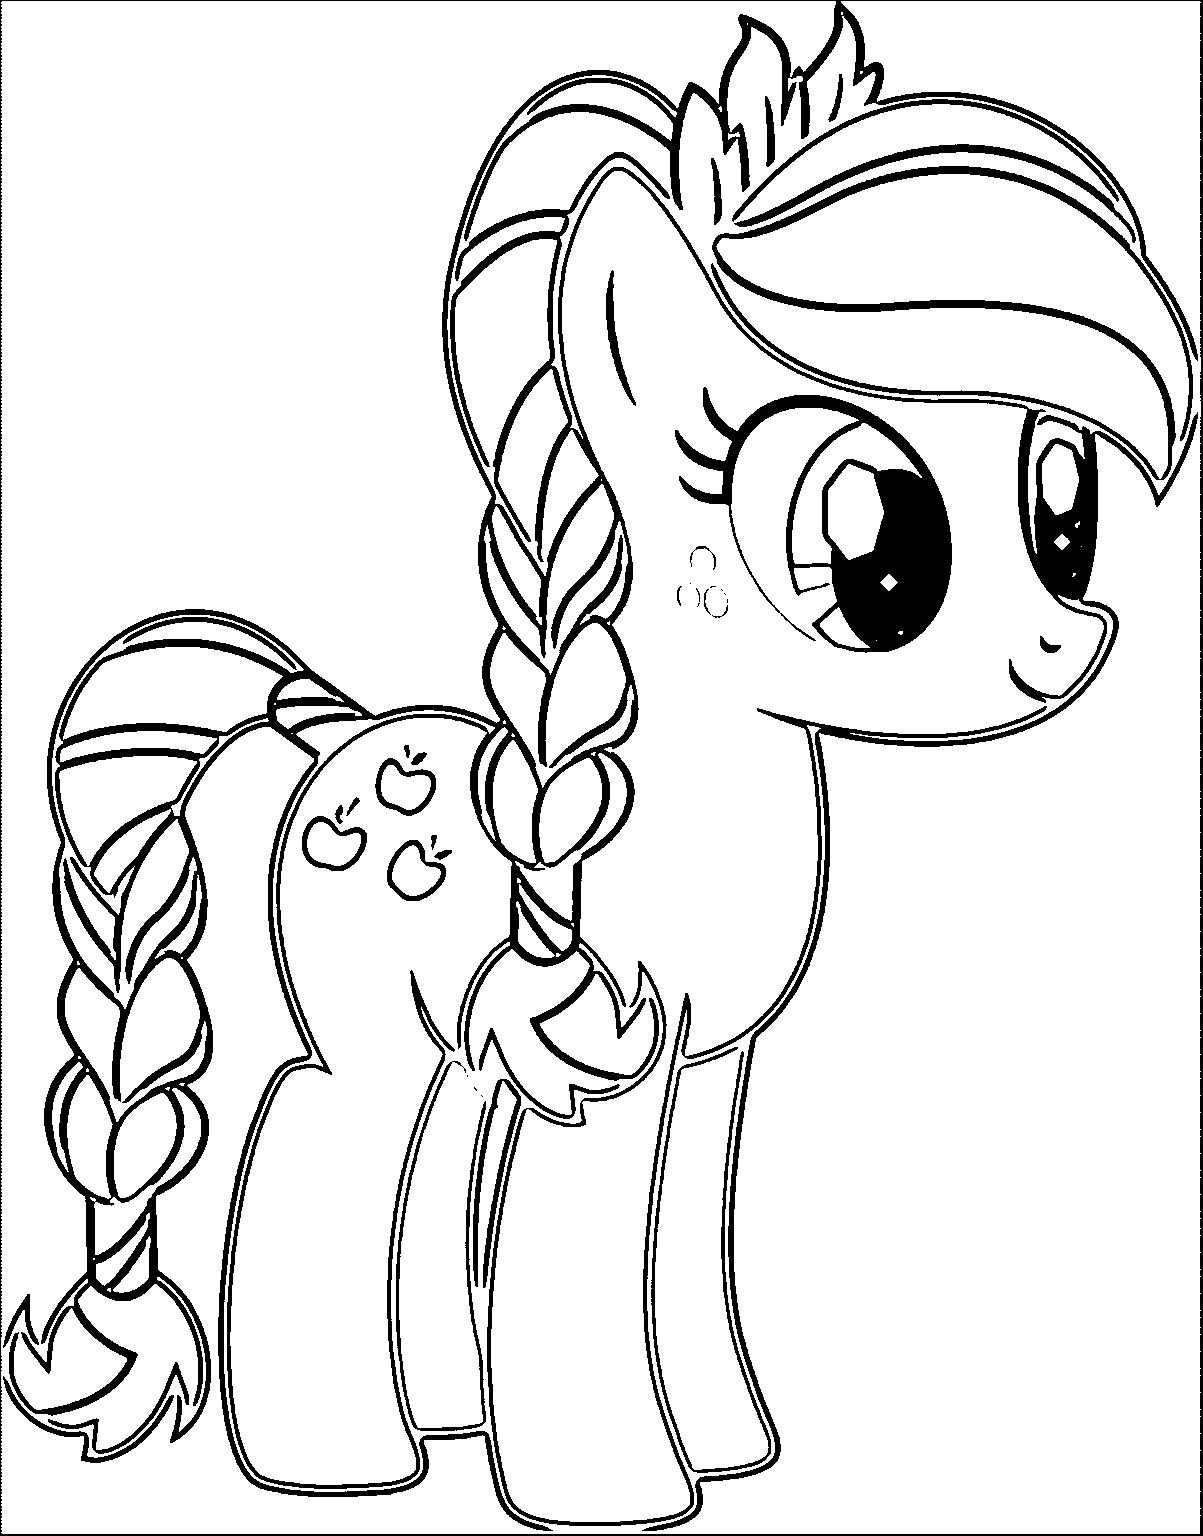 Little Pony Coloring Pages Through The Thousand Images On Line With Regards To Little Pon Horse Coloring Pages My Little Pony Coloring Unicorn Coloring Pages